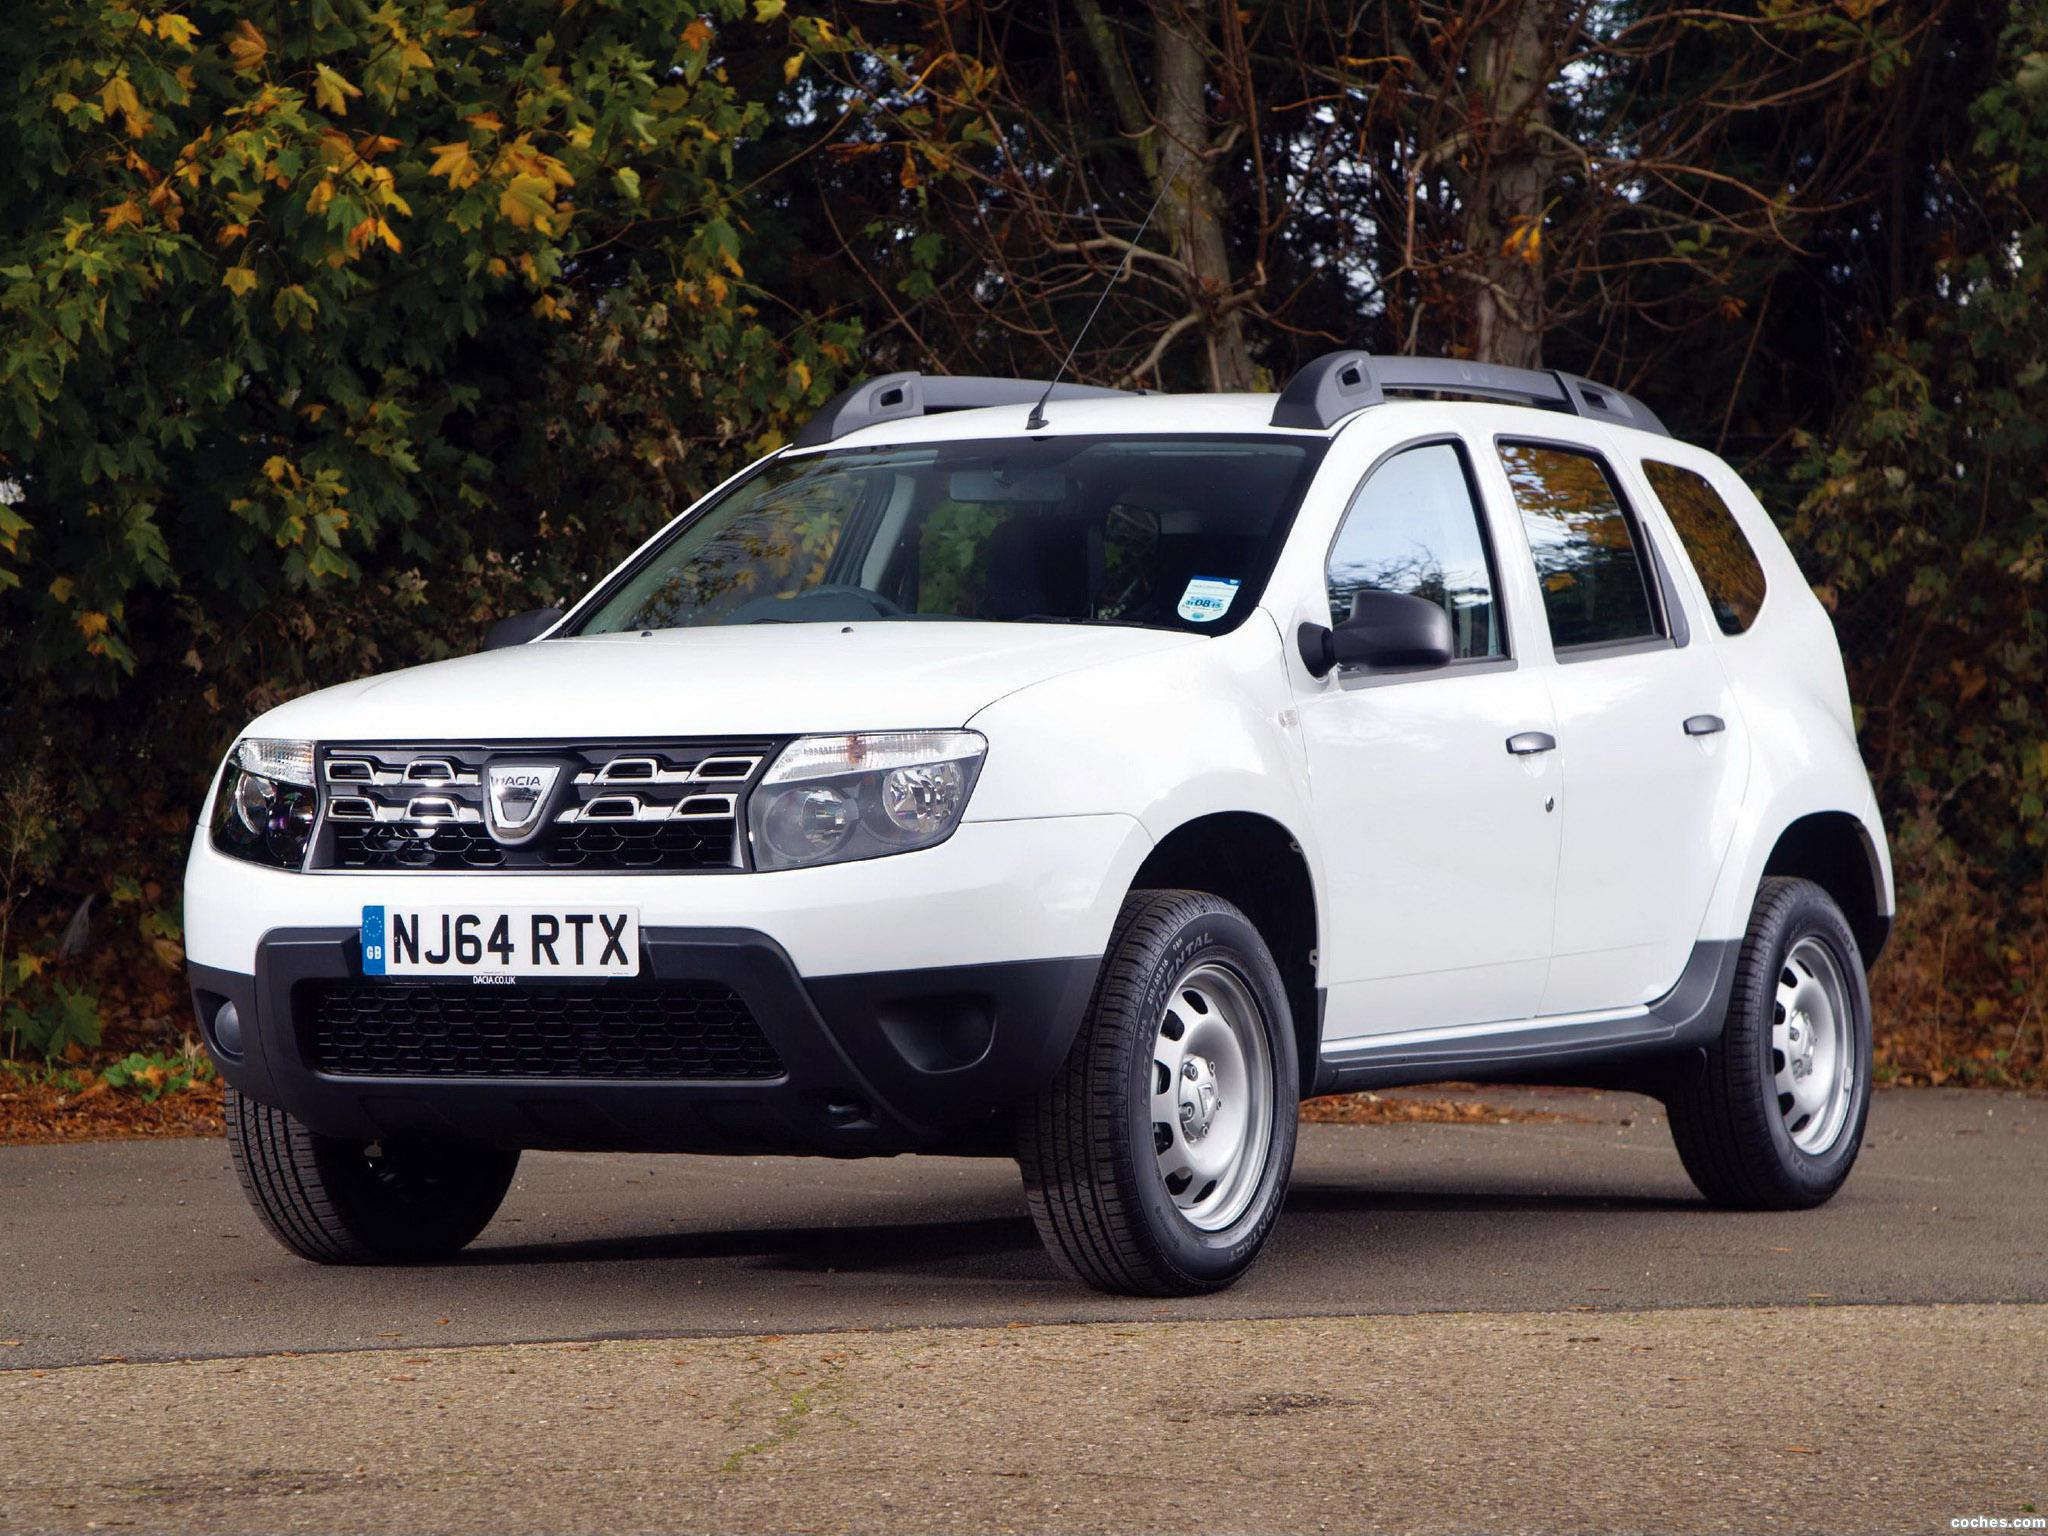 Fotos de dacia duster access uk 2014 foto 4 for Immagini dacia duster